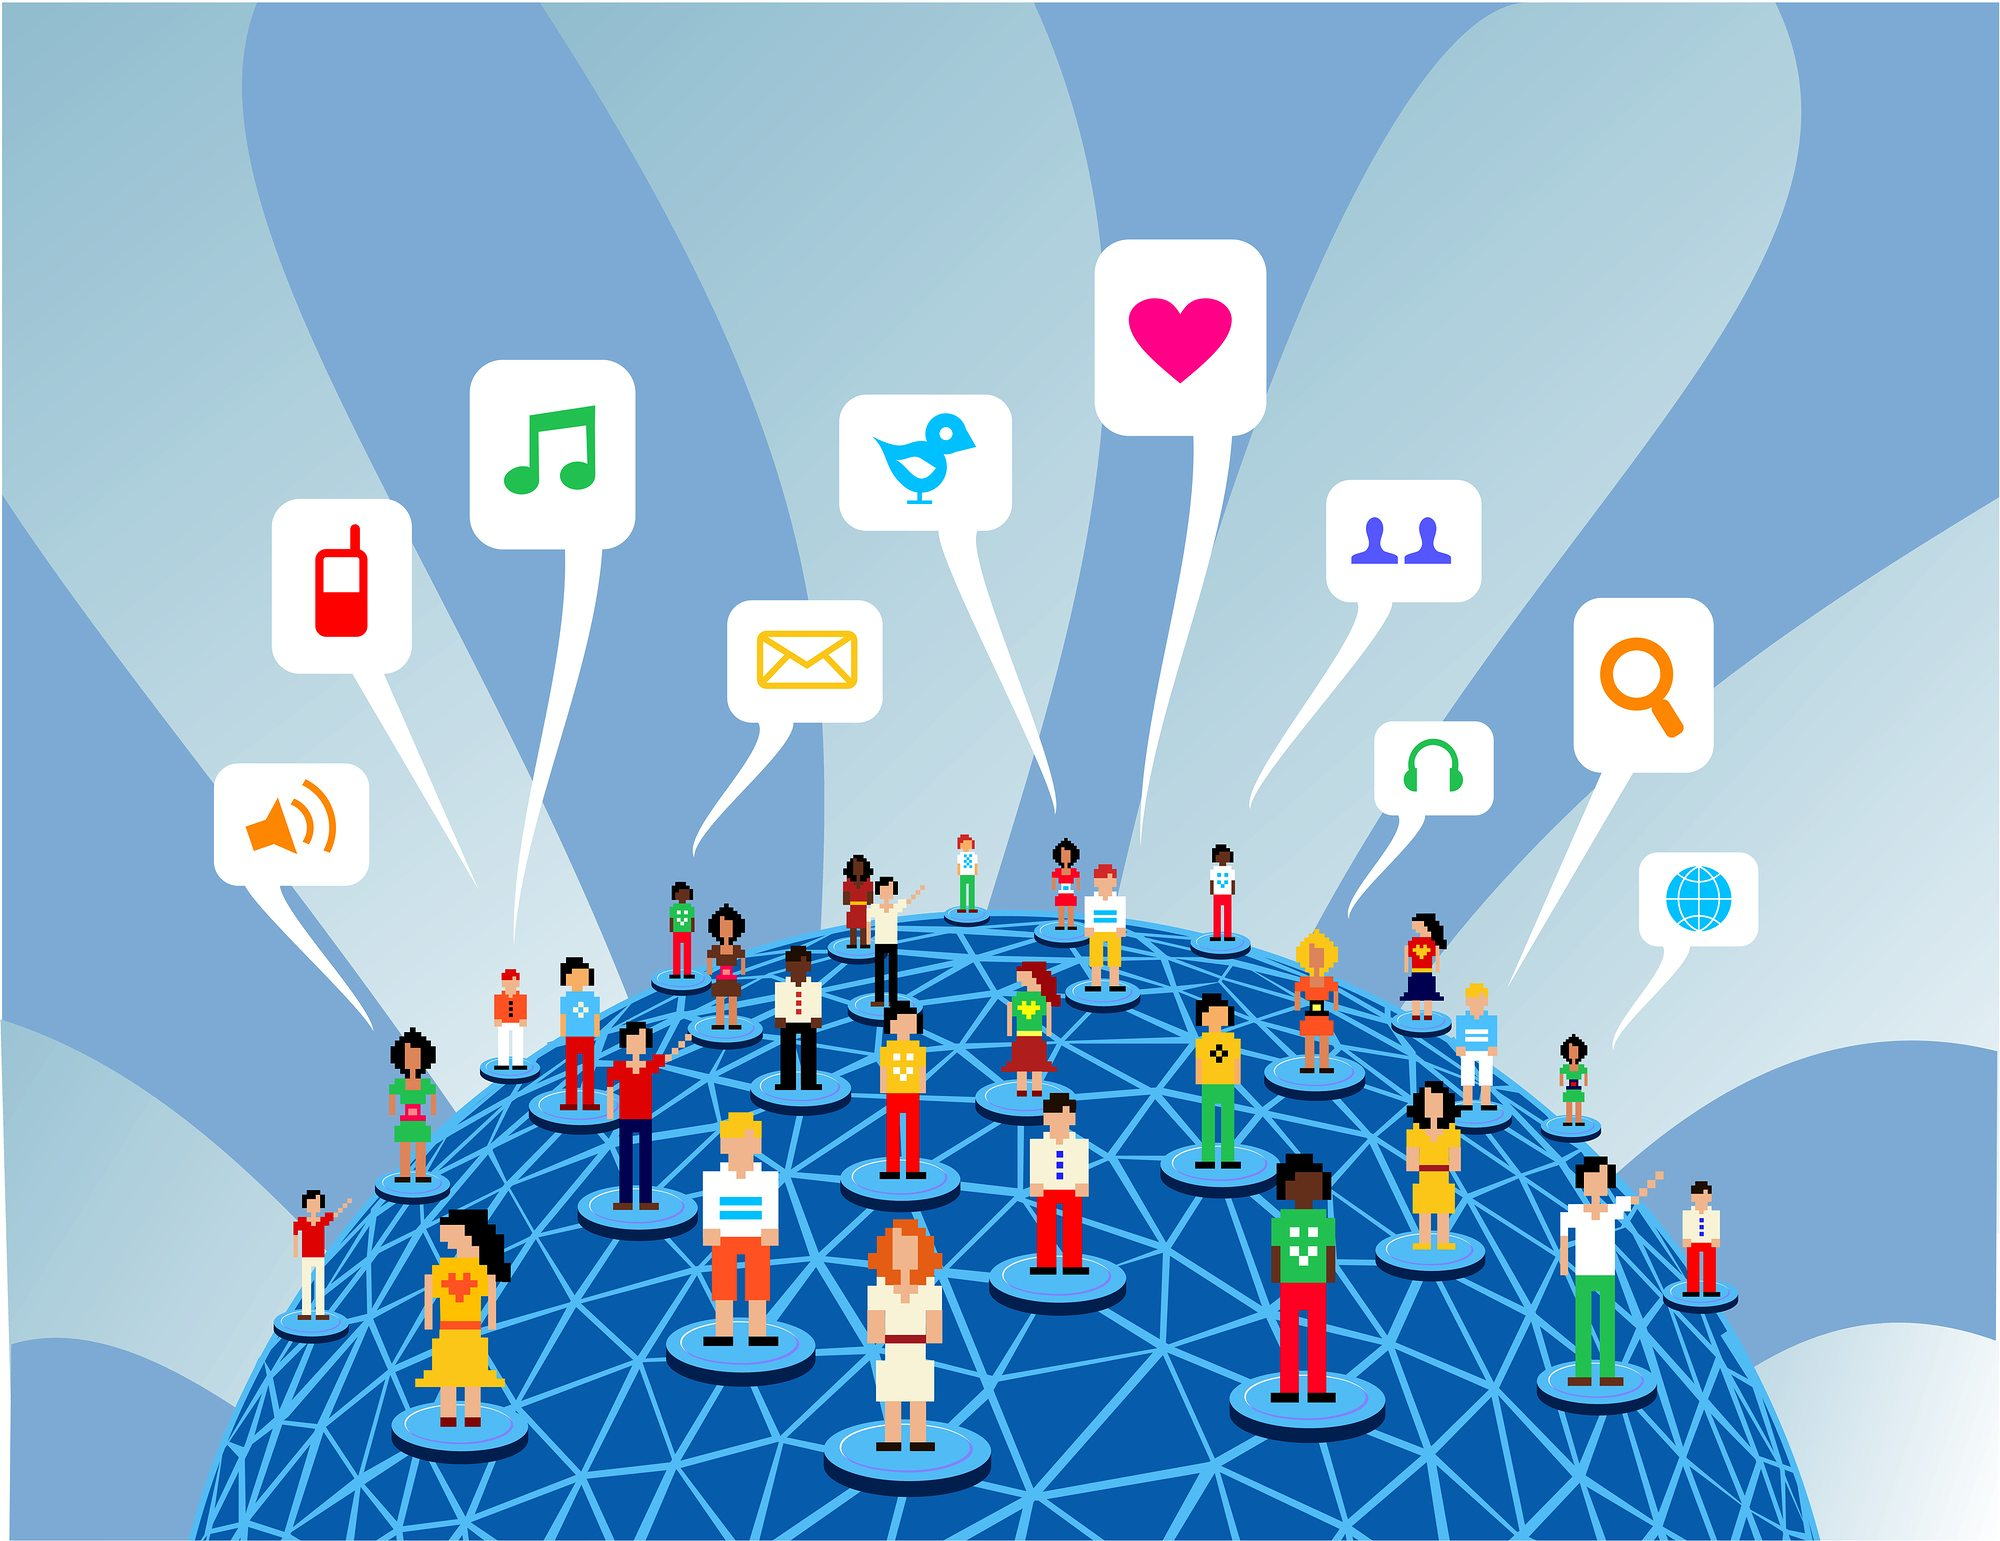 Global social media network people communication concept.